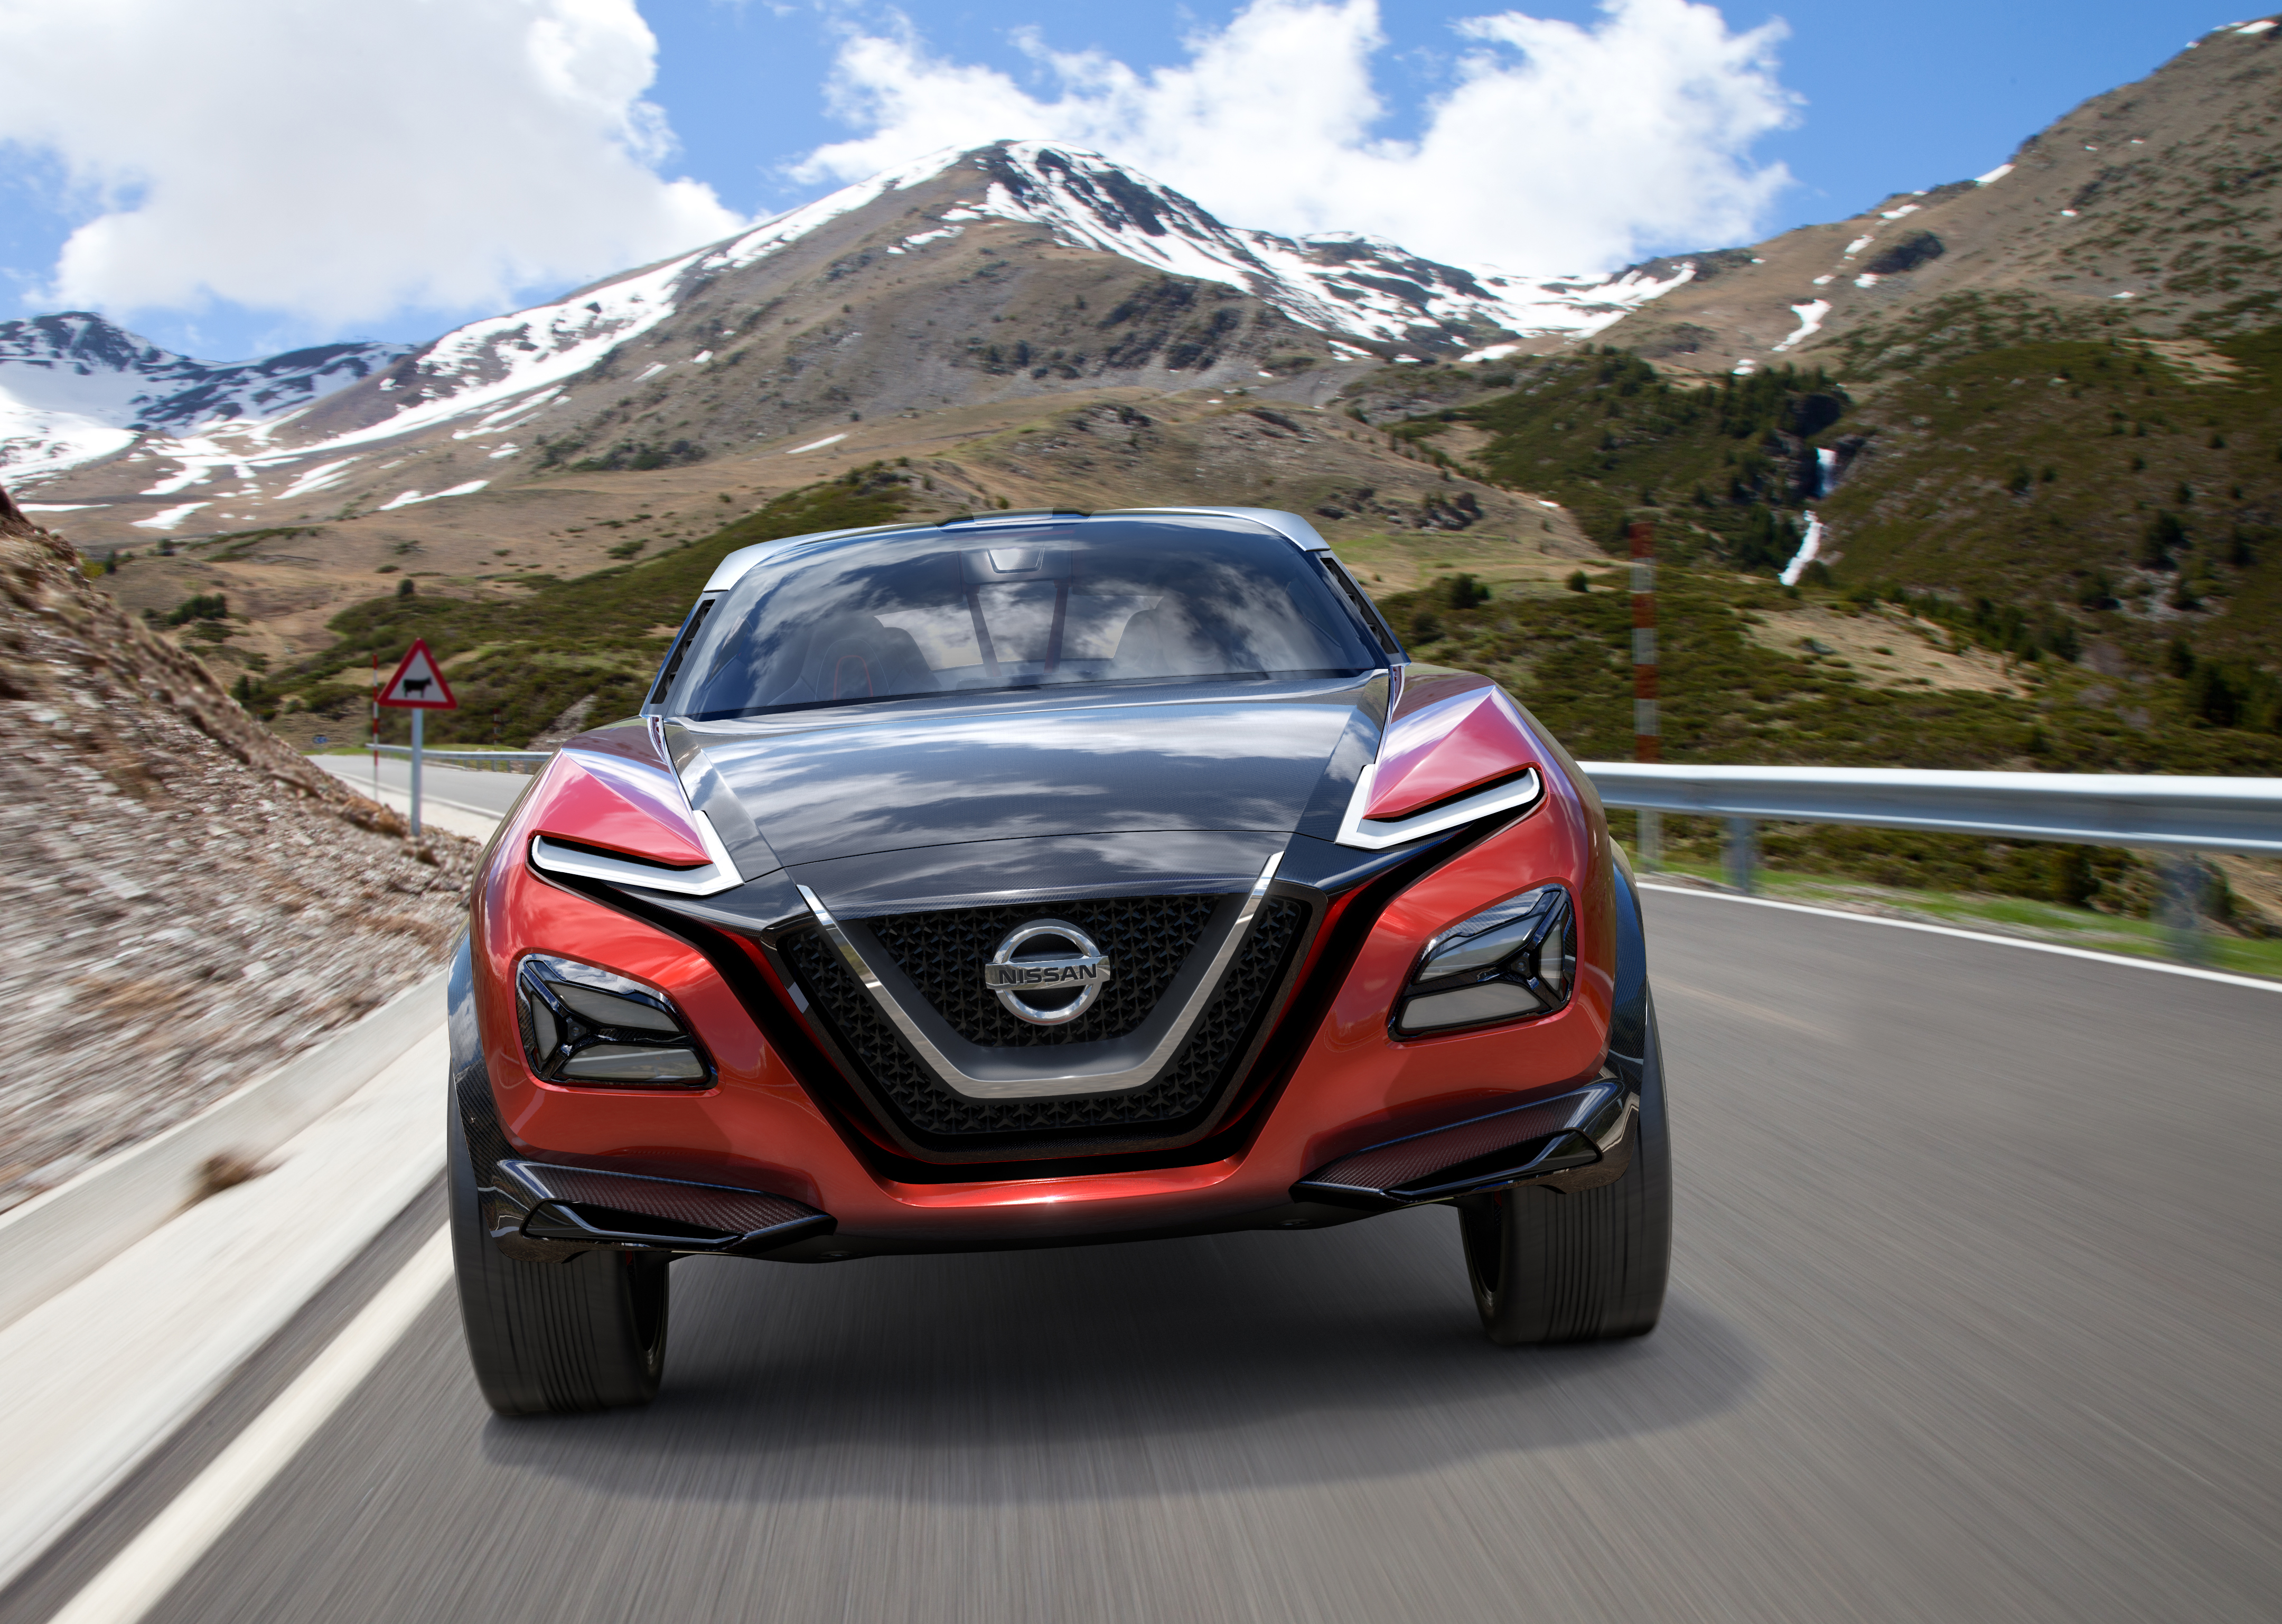 nissan to develop plug-in hybrid model for europe